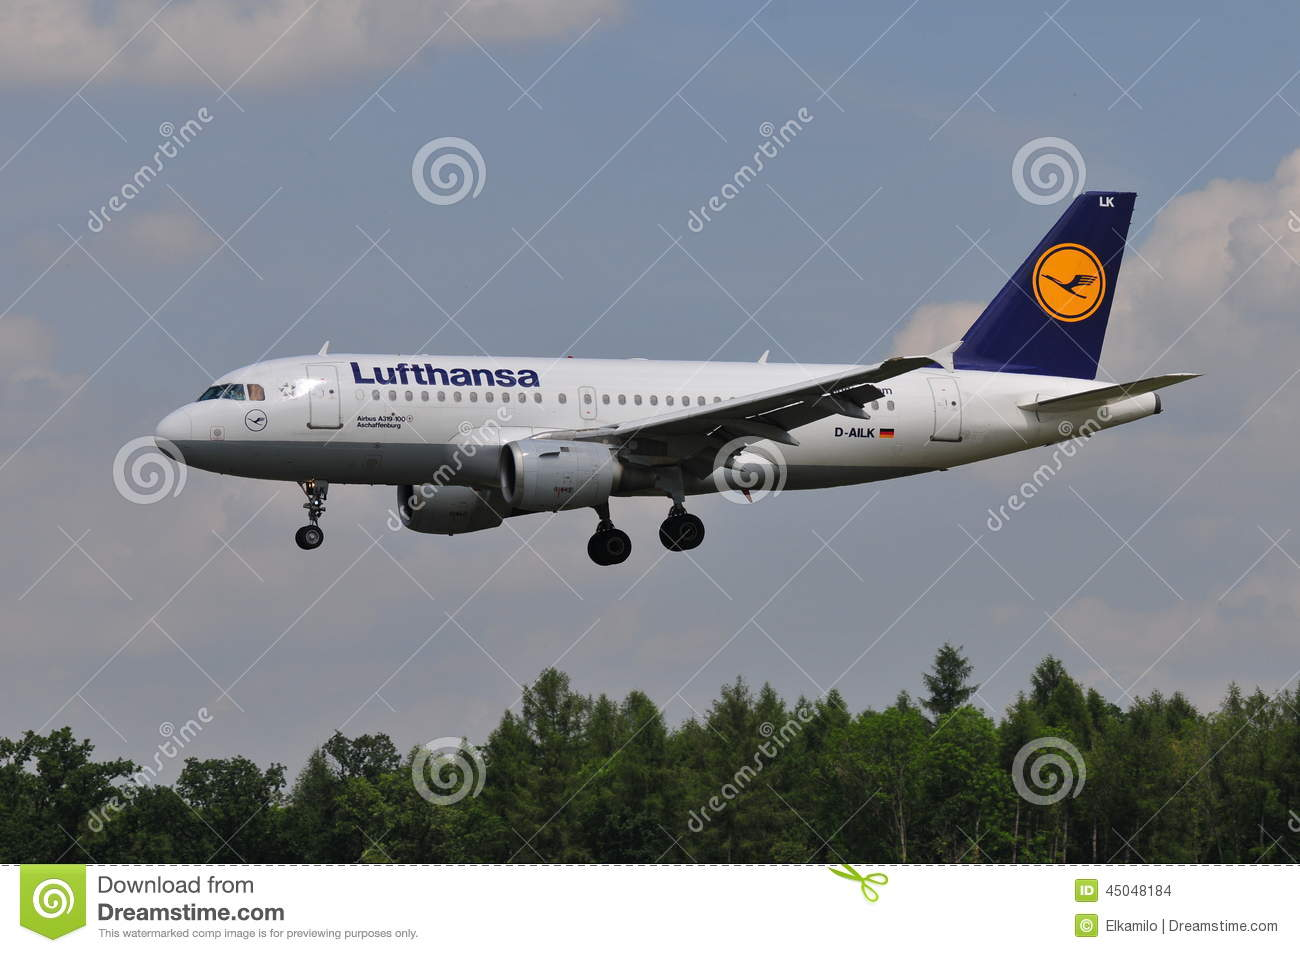 Lufthansa flight editorial stock image image 45048184 for Lufthansa direct flights to germany